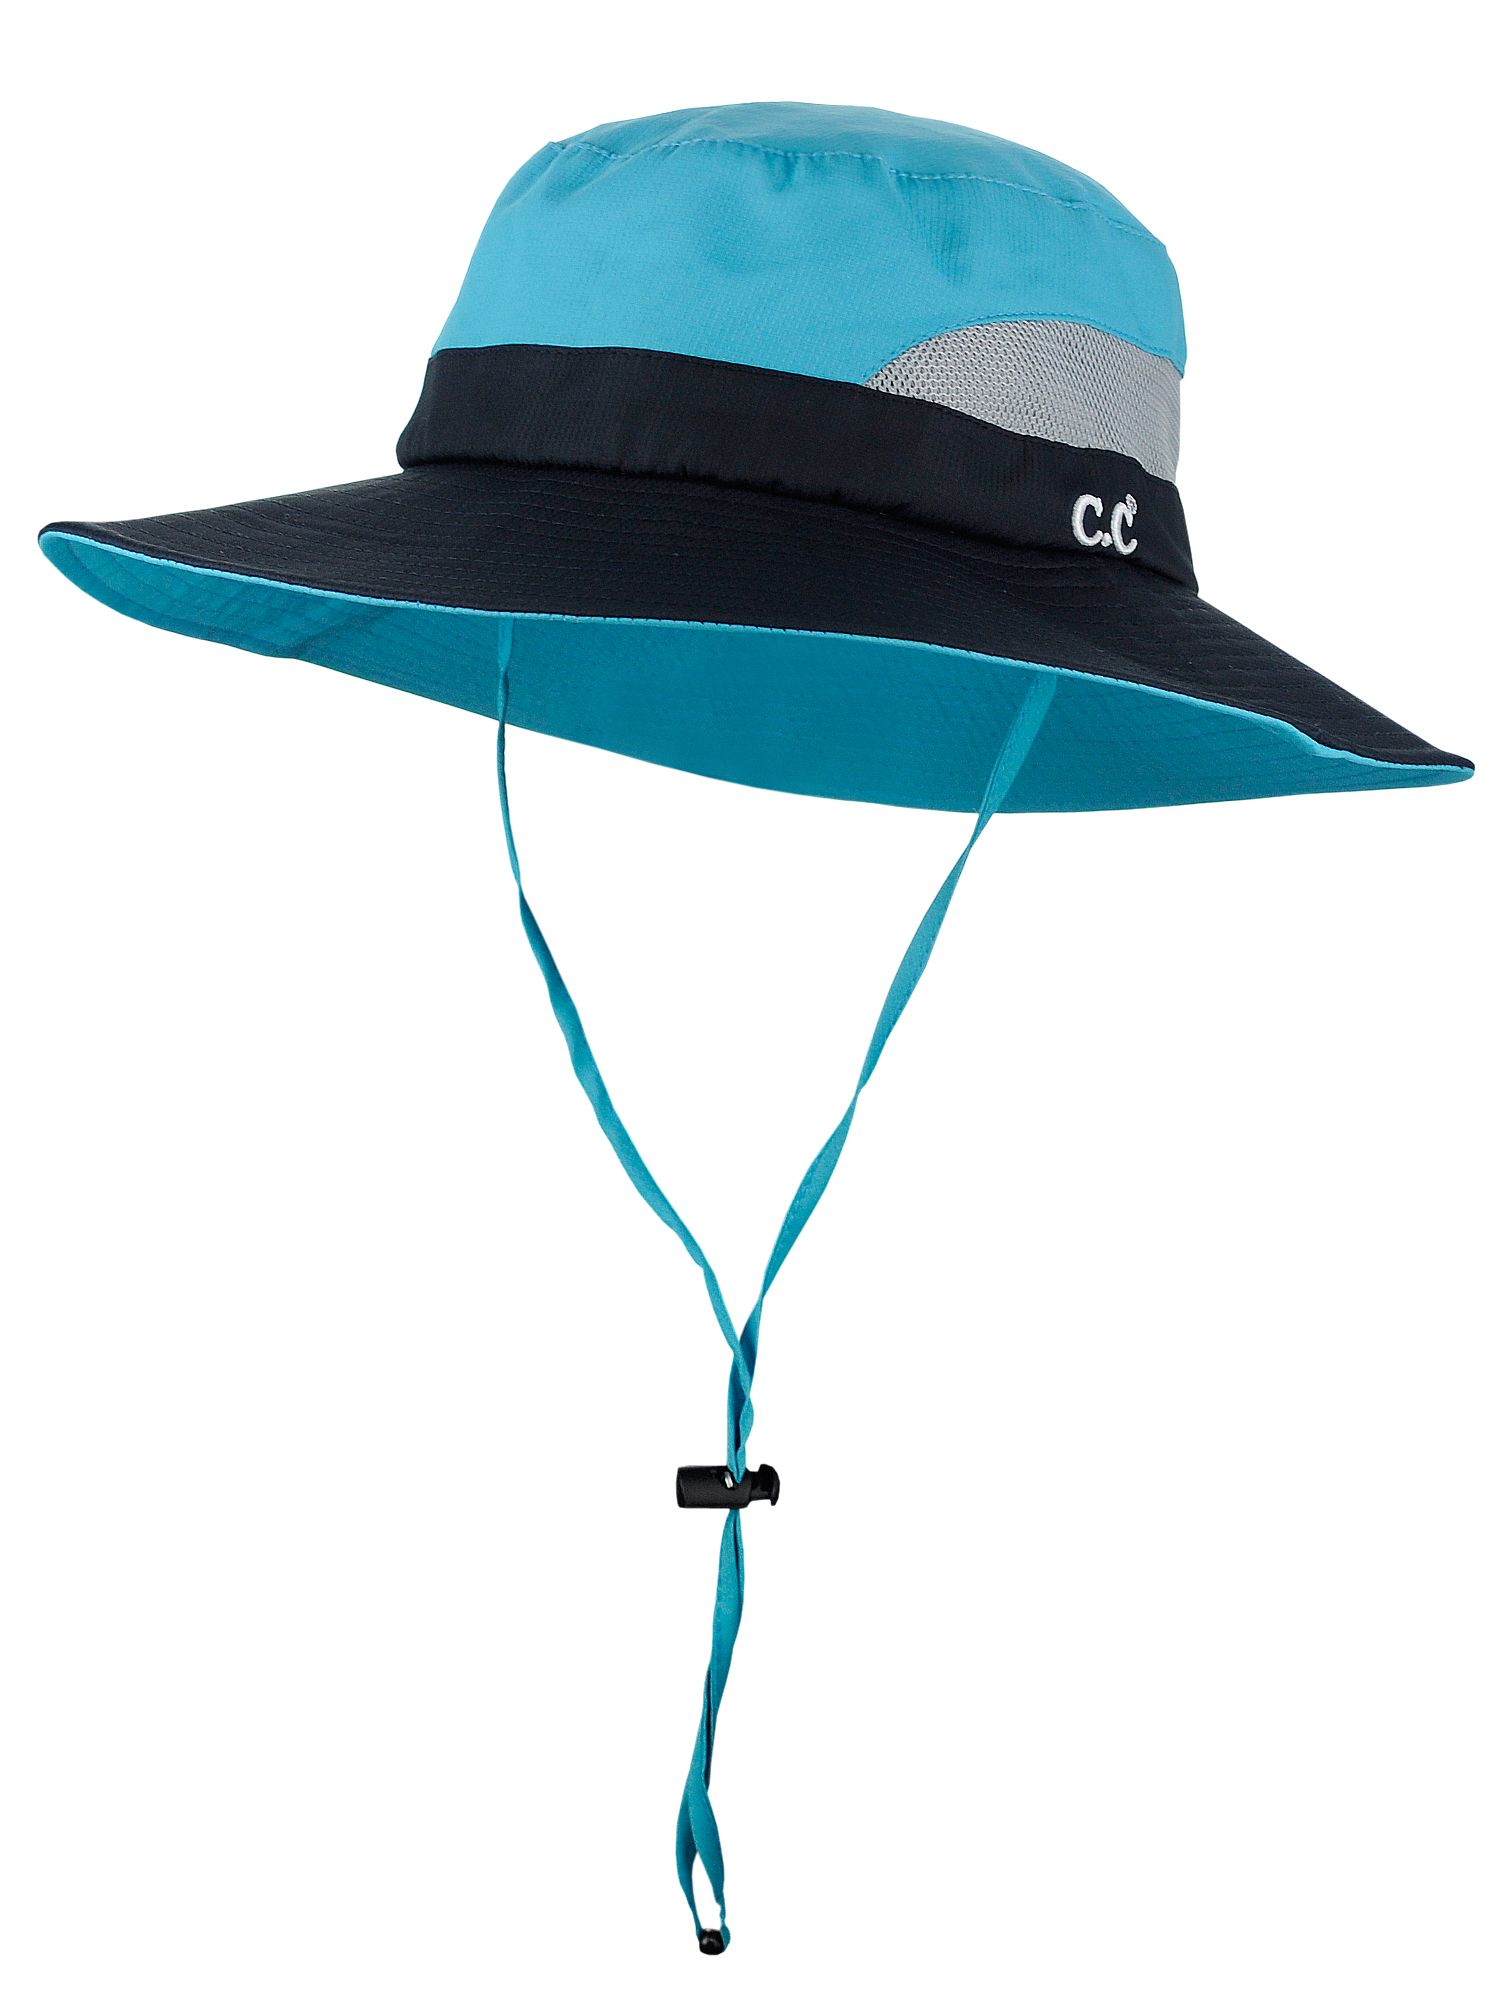 C.C Safari Sun Hat Wide Brim Hat with Ponytail Hole Packable UPF 50+ for Hiking Camping